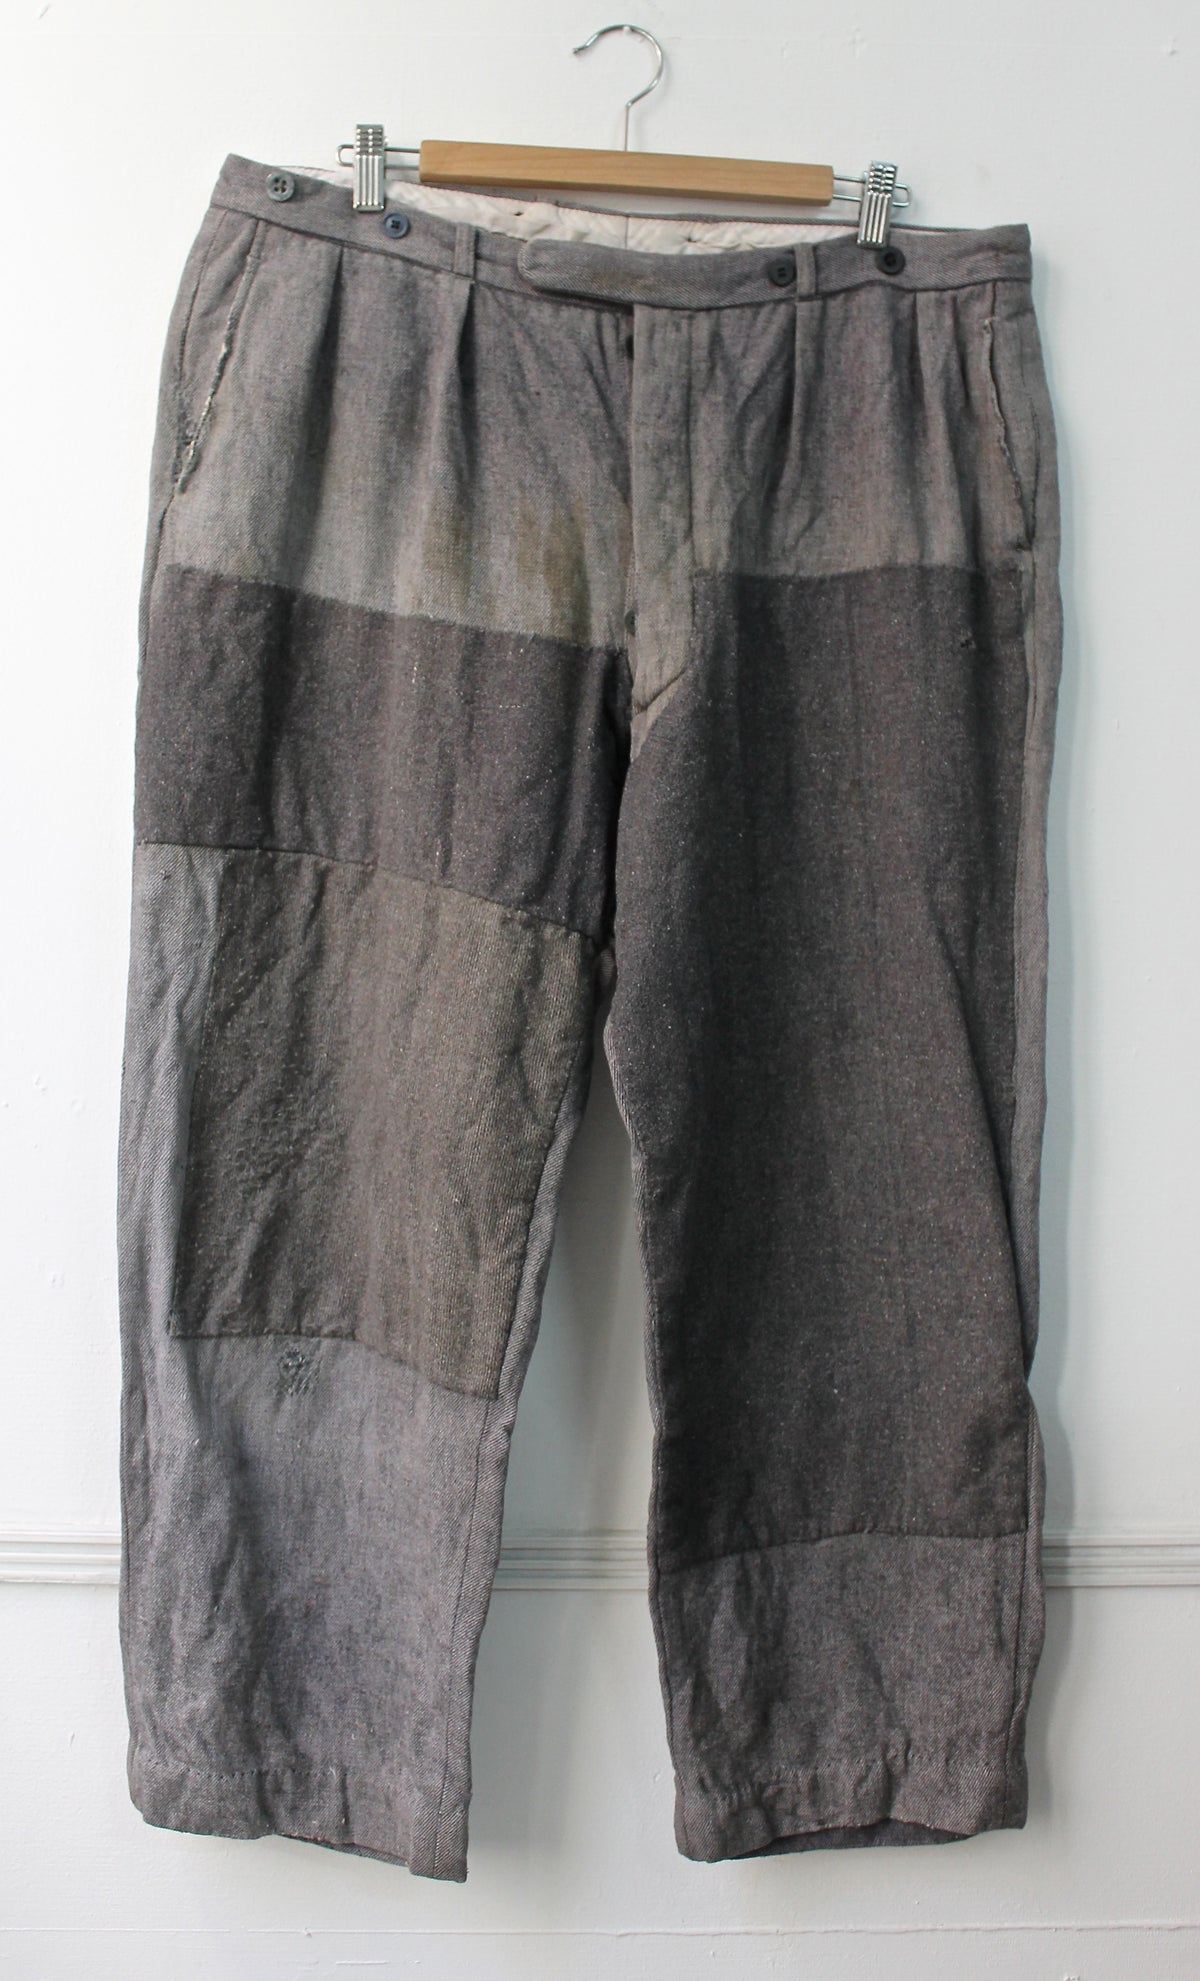 Image of 1920 FRENCH WOOL PANT PATCHED